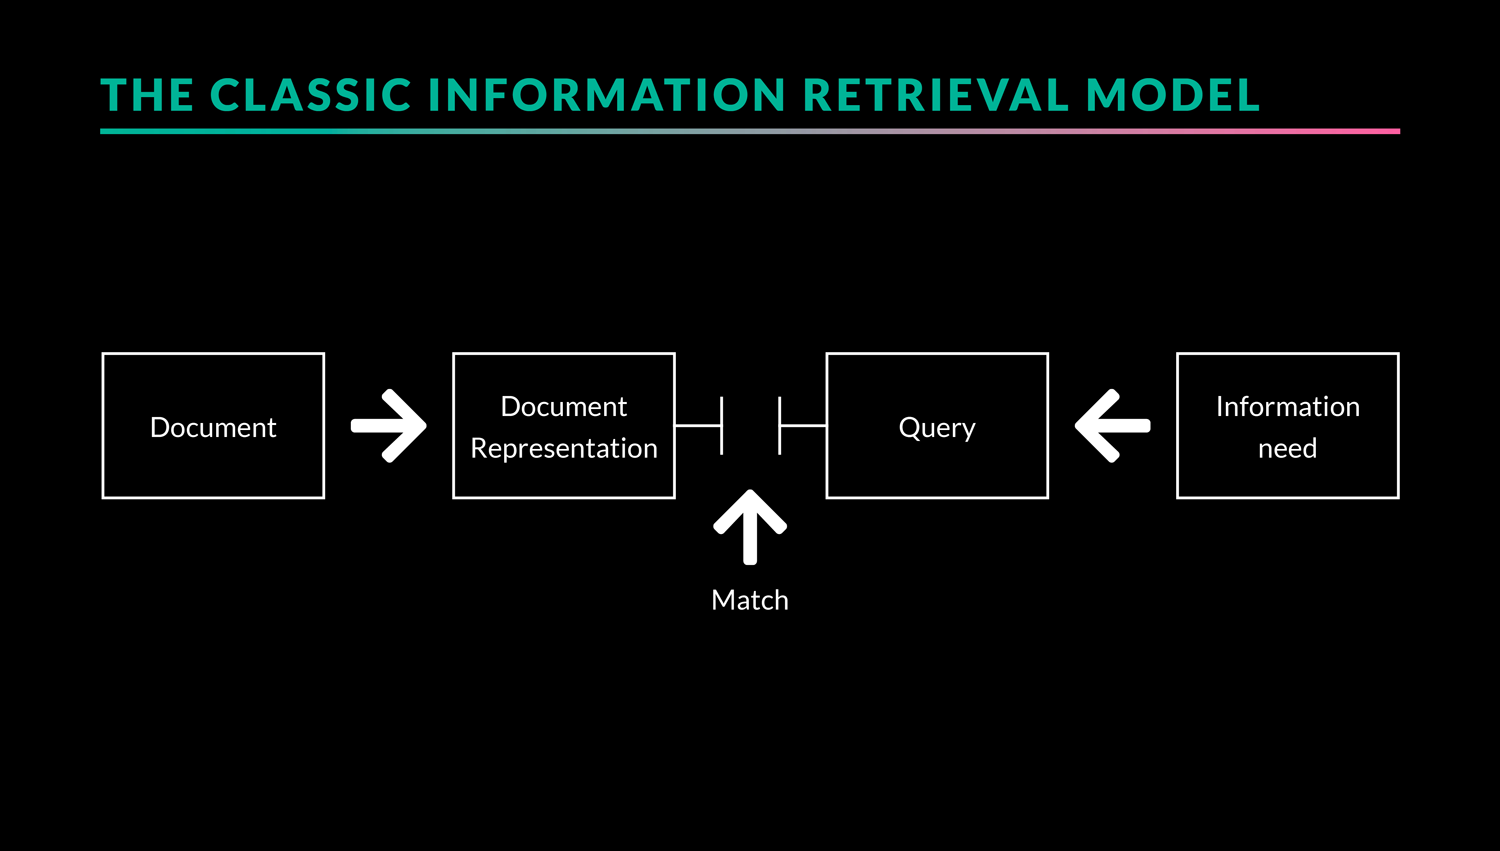 the classic information retrieval model